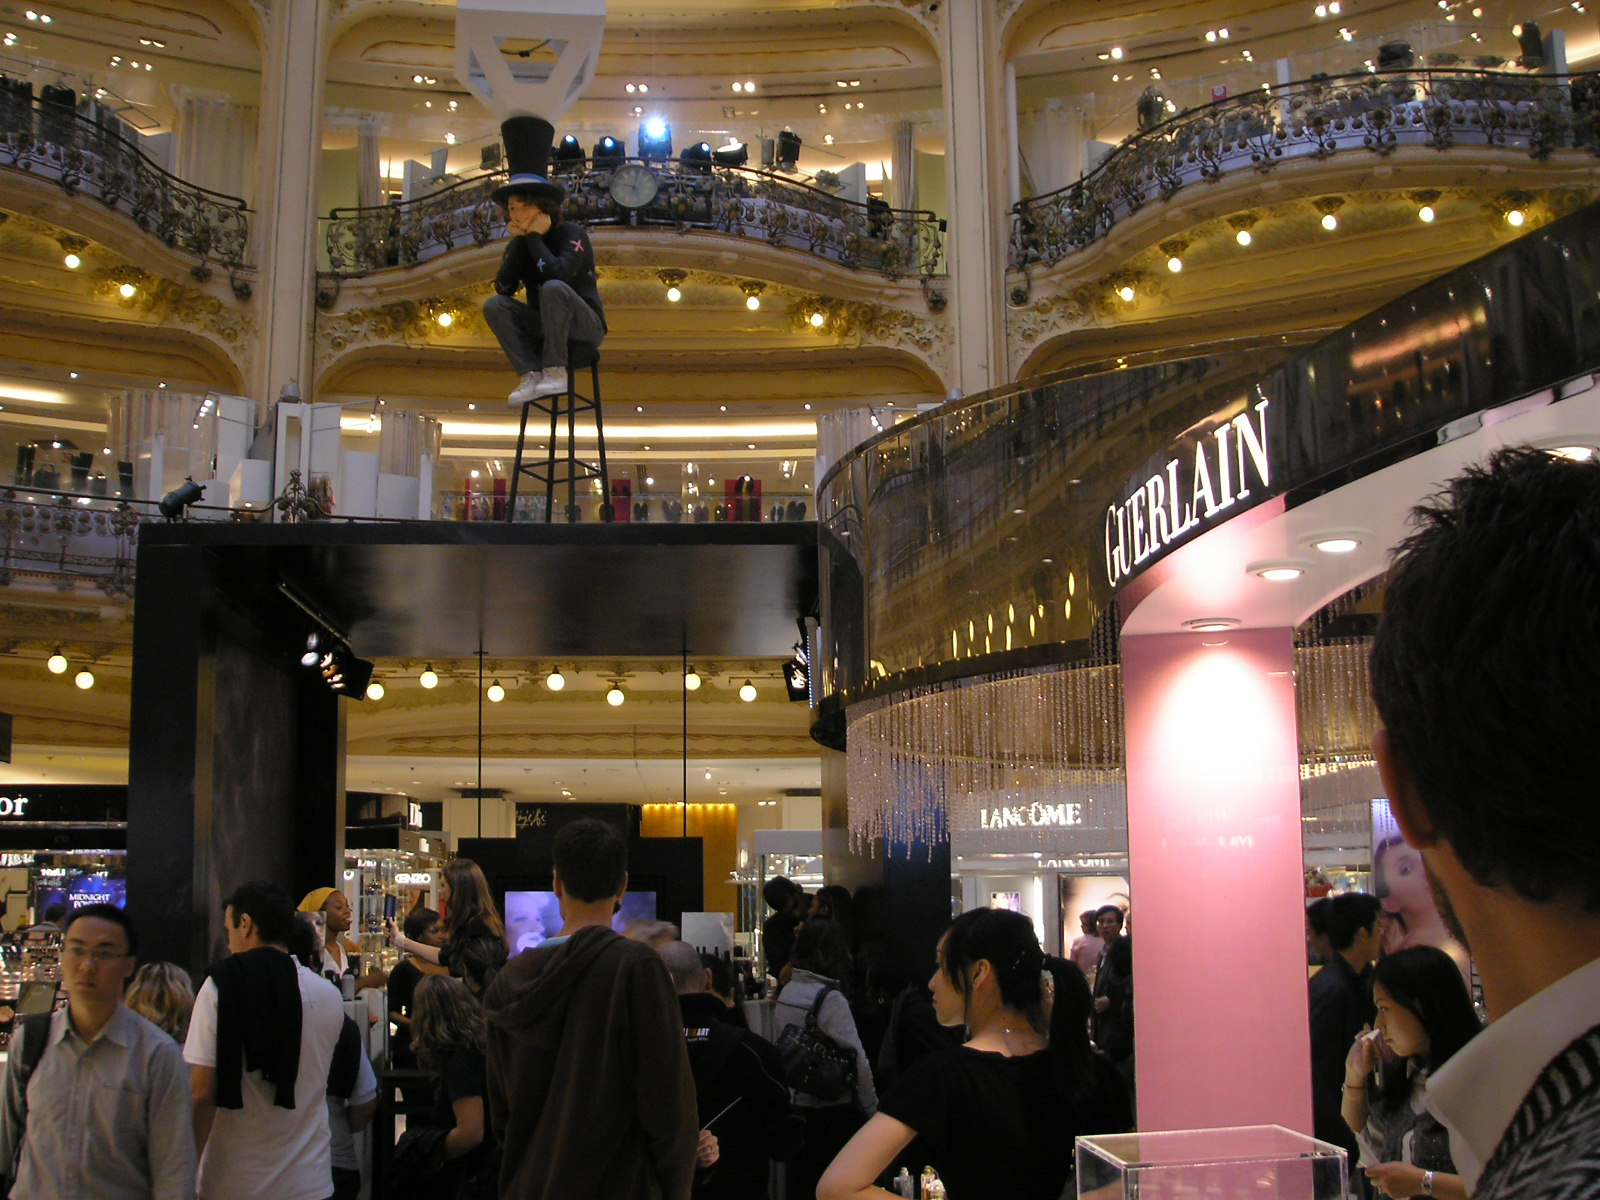 https://upload.wikimedia.org/wikipedia/commons/e/e3/Galeries_Lafayette_Paris_interieur_Oct_2007_008.jpg